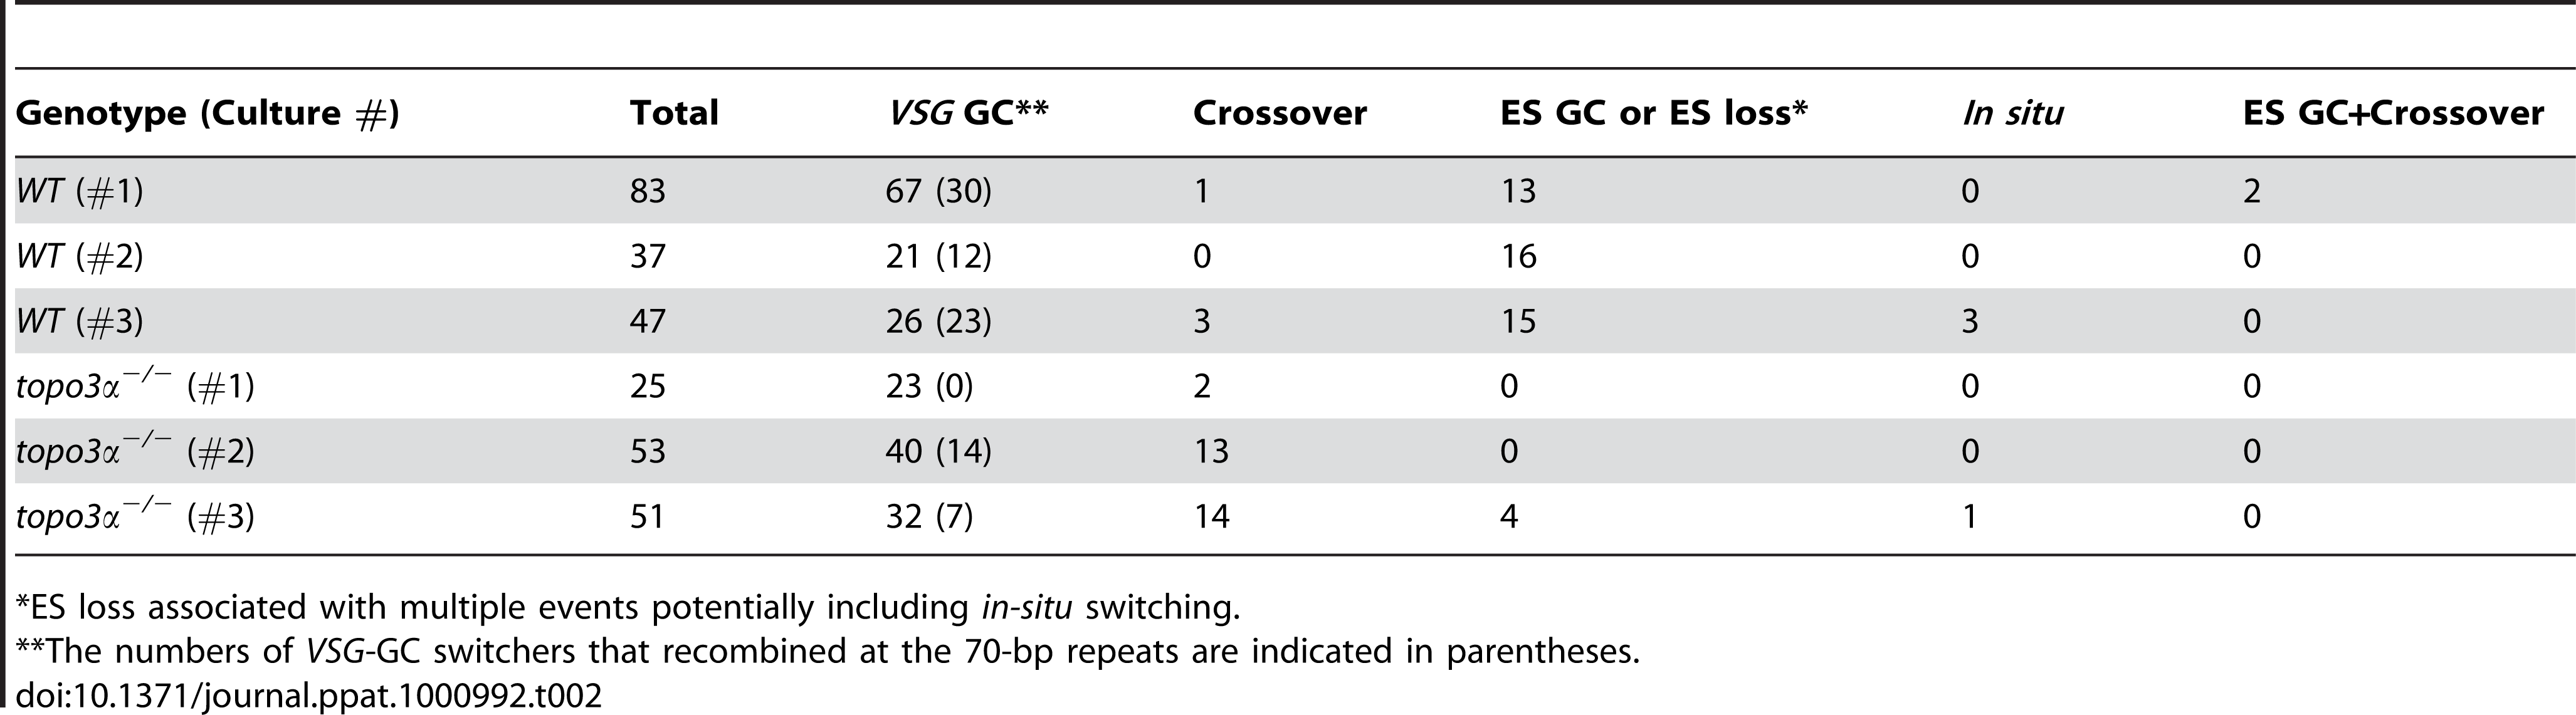 Summary of switching mechanisms in wild-type and <i>topo3α<sup>−/−</sup></i> cells indicating the total number of switchers in each culture and the numbers of switchers assigned to different switching mechanisms.